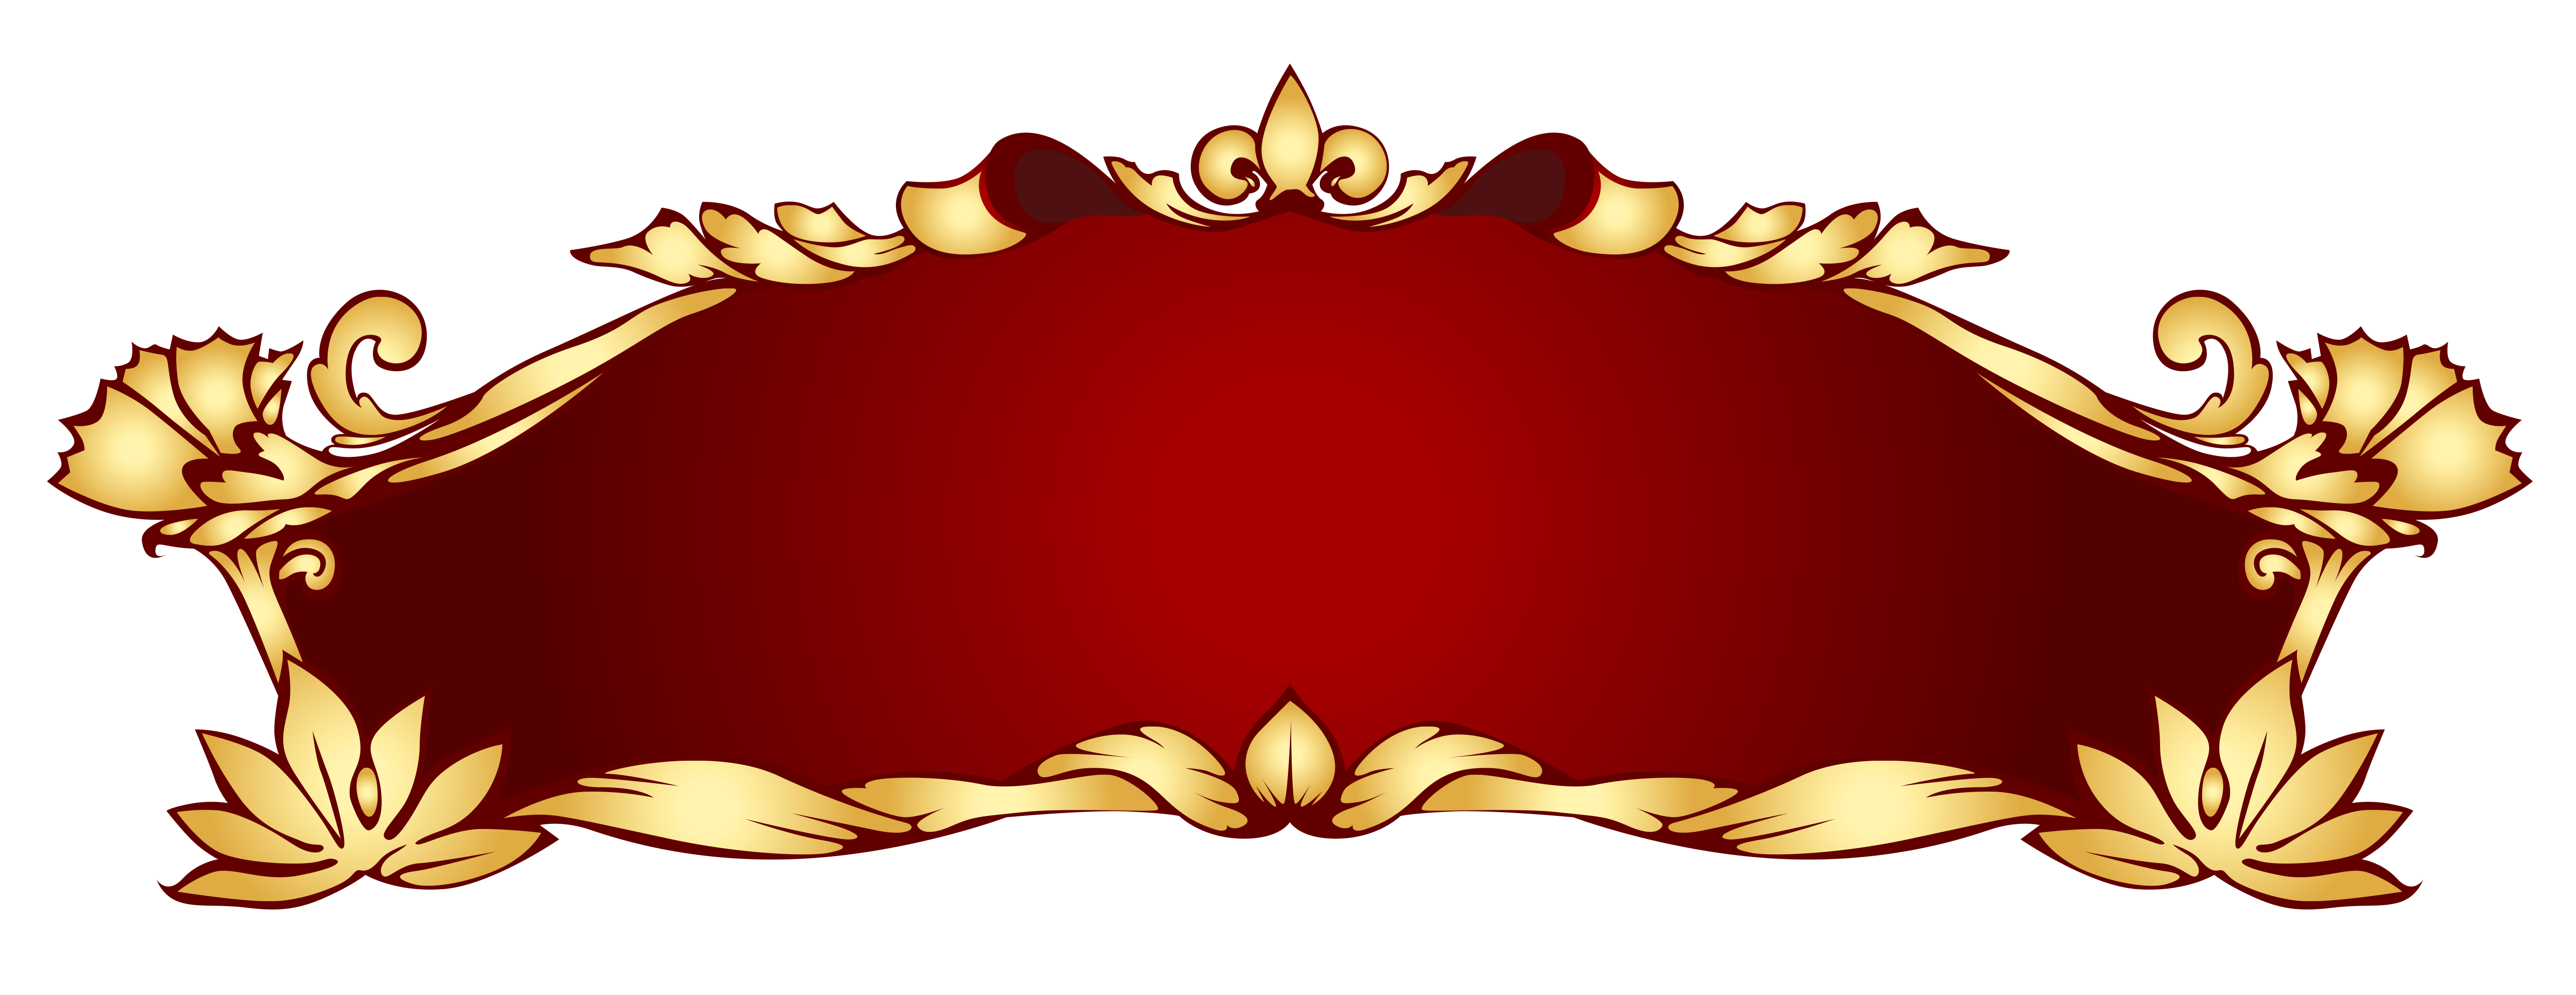 Banner Png Picture image #44833